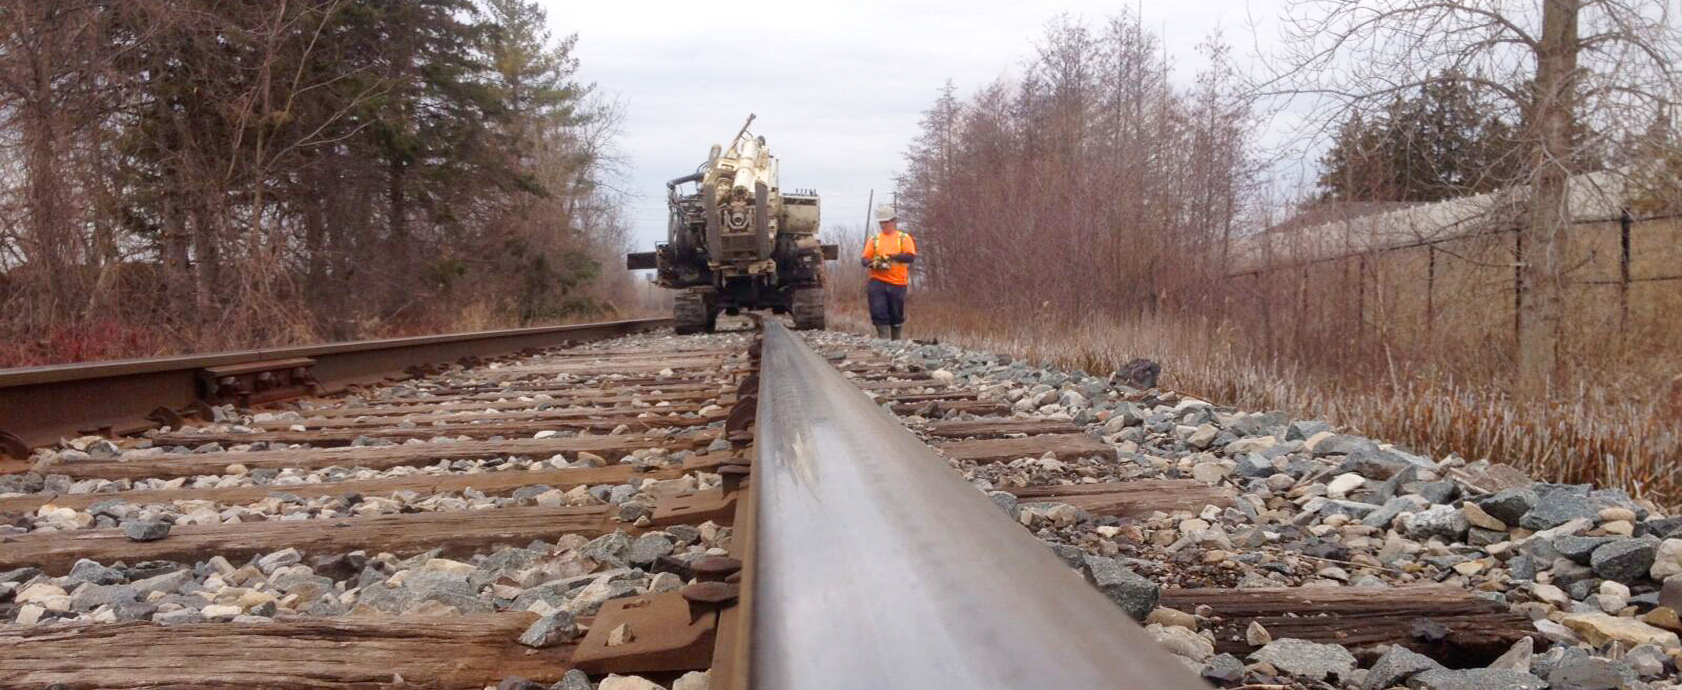 Drill rig on train tracks